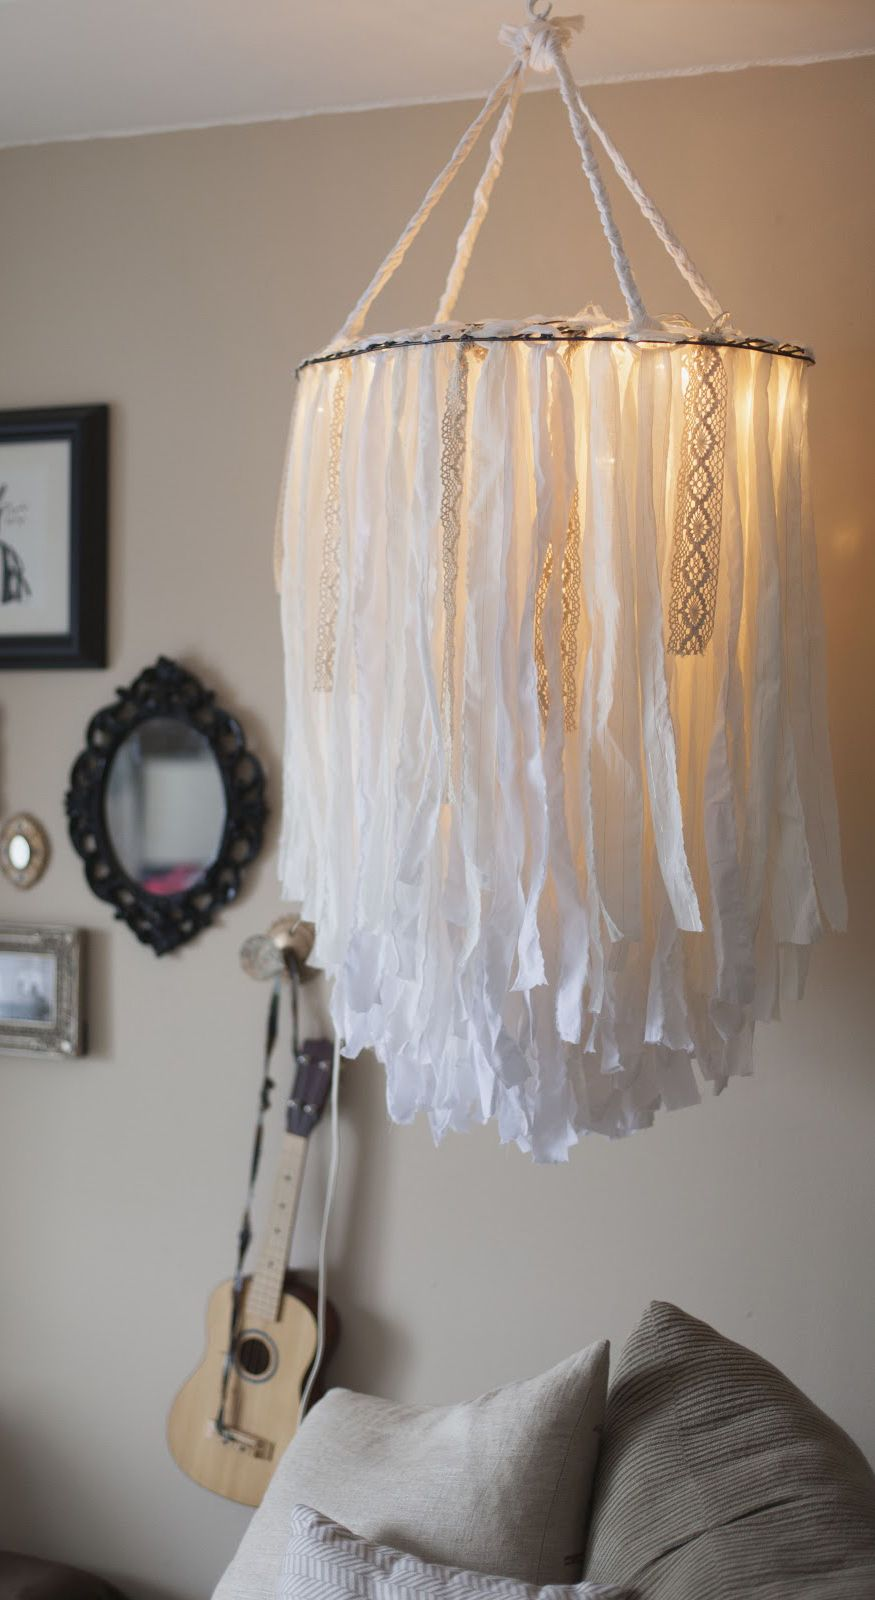 Cloth chandelier | Boho Sweet Home | Diy chandelier, DIY ...